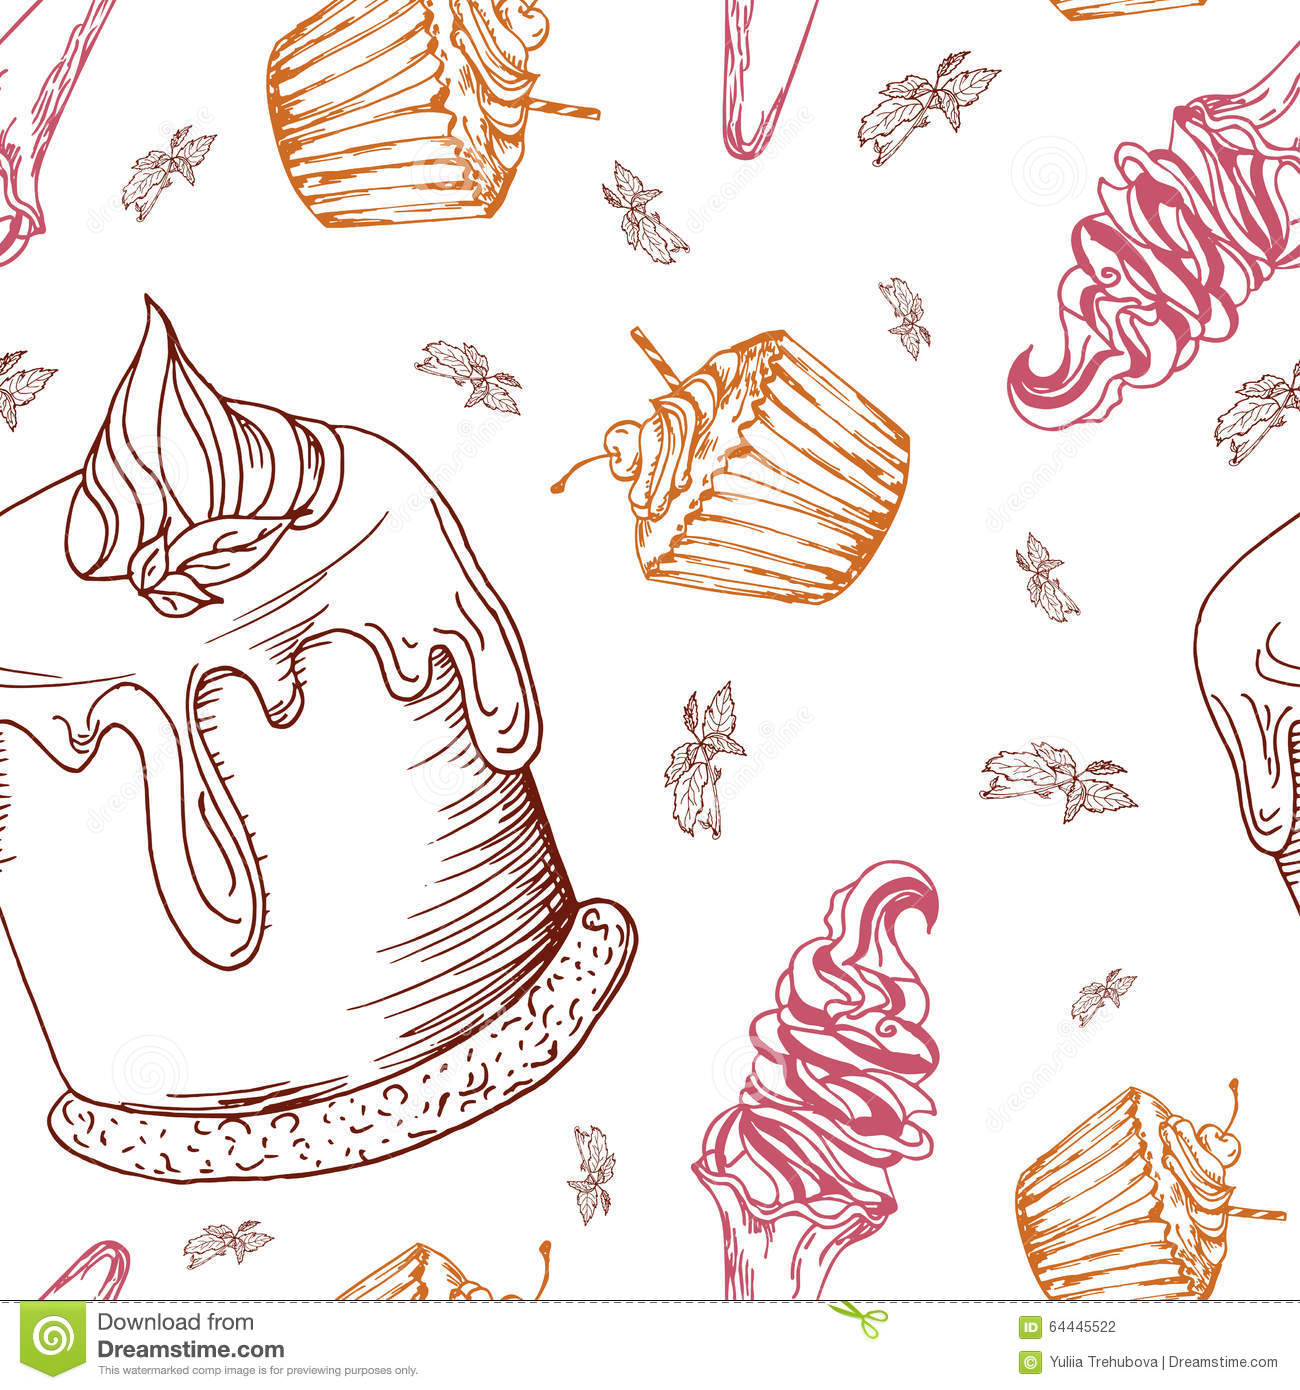 Seamless pattern with desserts. Hand drawn panna cotta, muffin, ice cream. Vector illustration for your design.